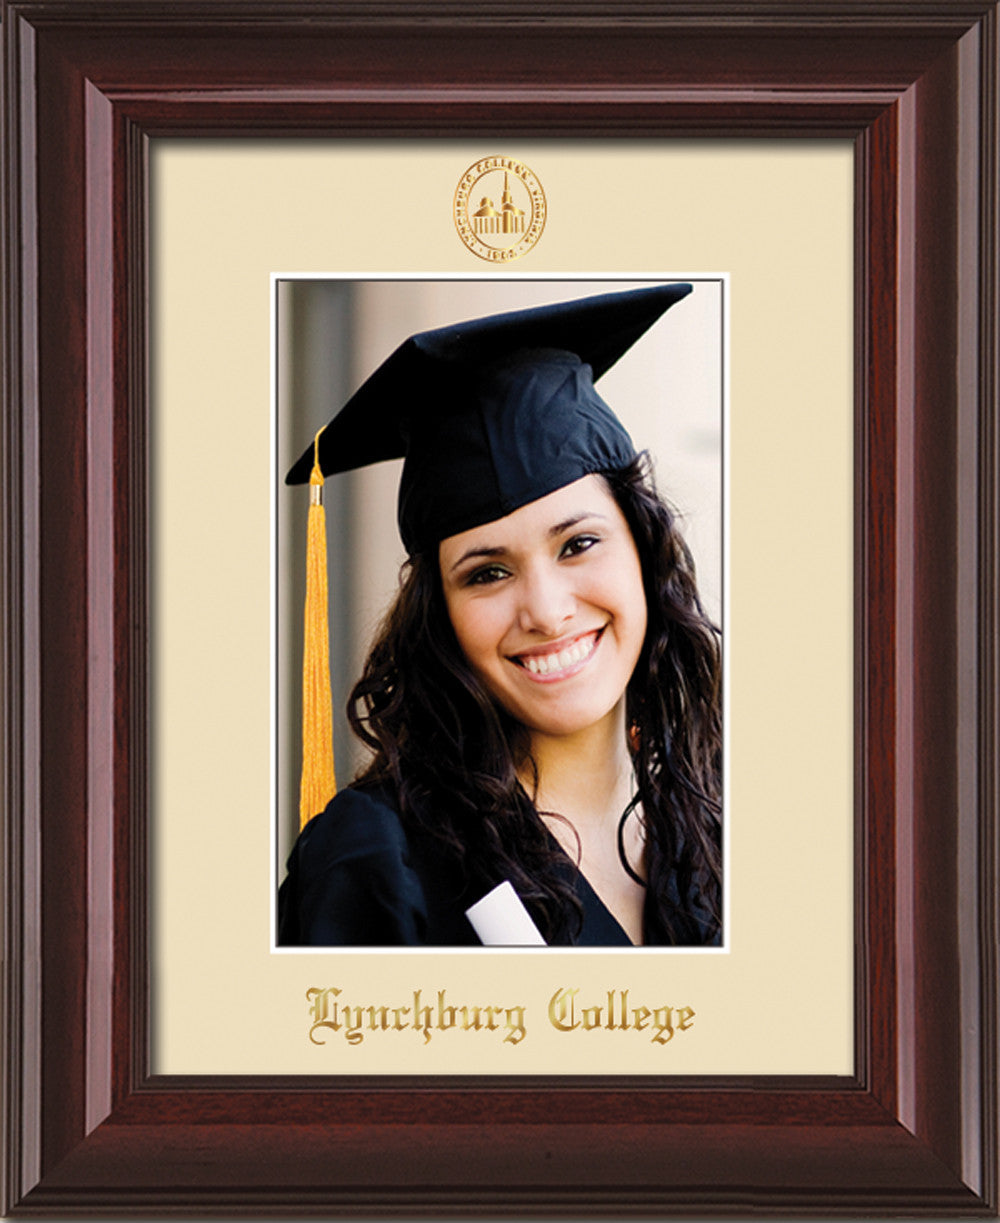 Beautiful Embossed Black /& Silver 5x7 Graduation Picture Frame